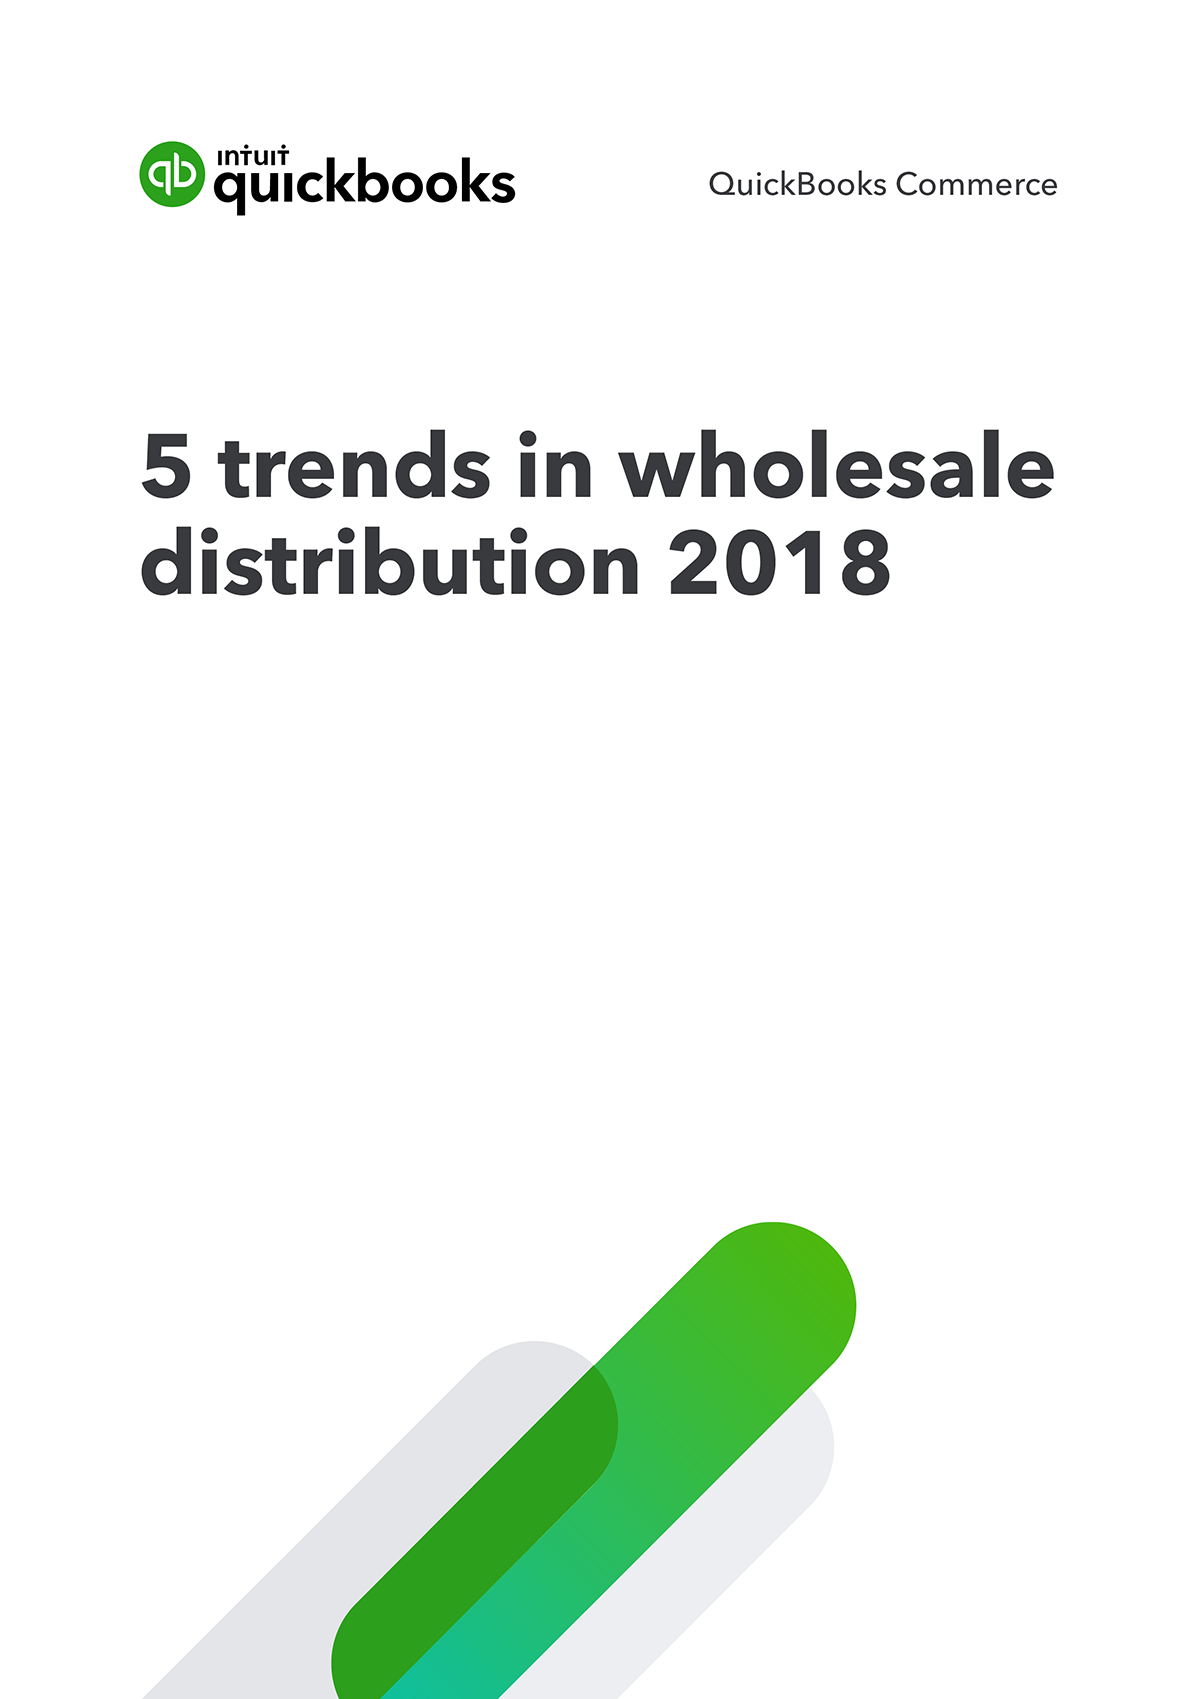 5 trends in wholesale distribution